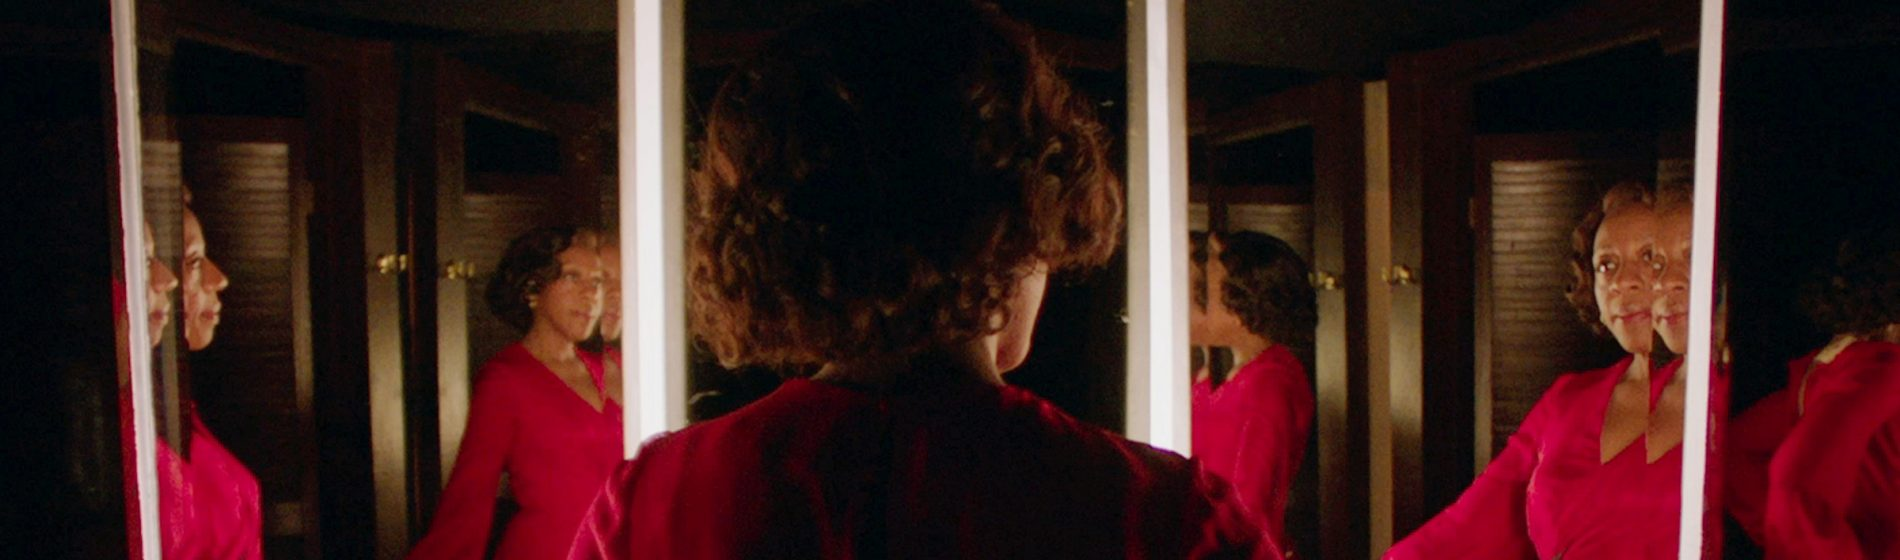 Peter Strickland's In Fabric